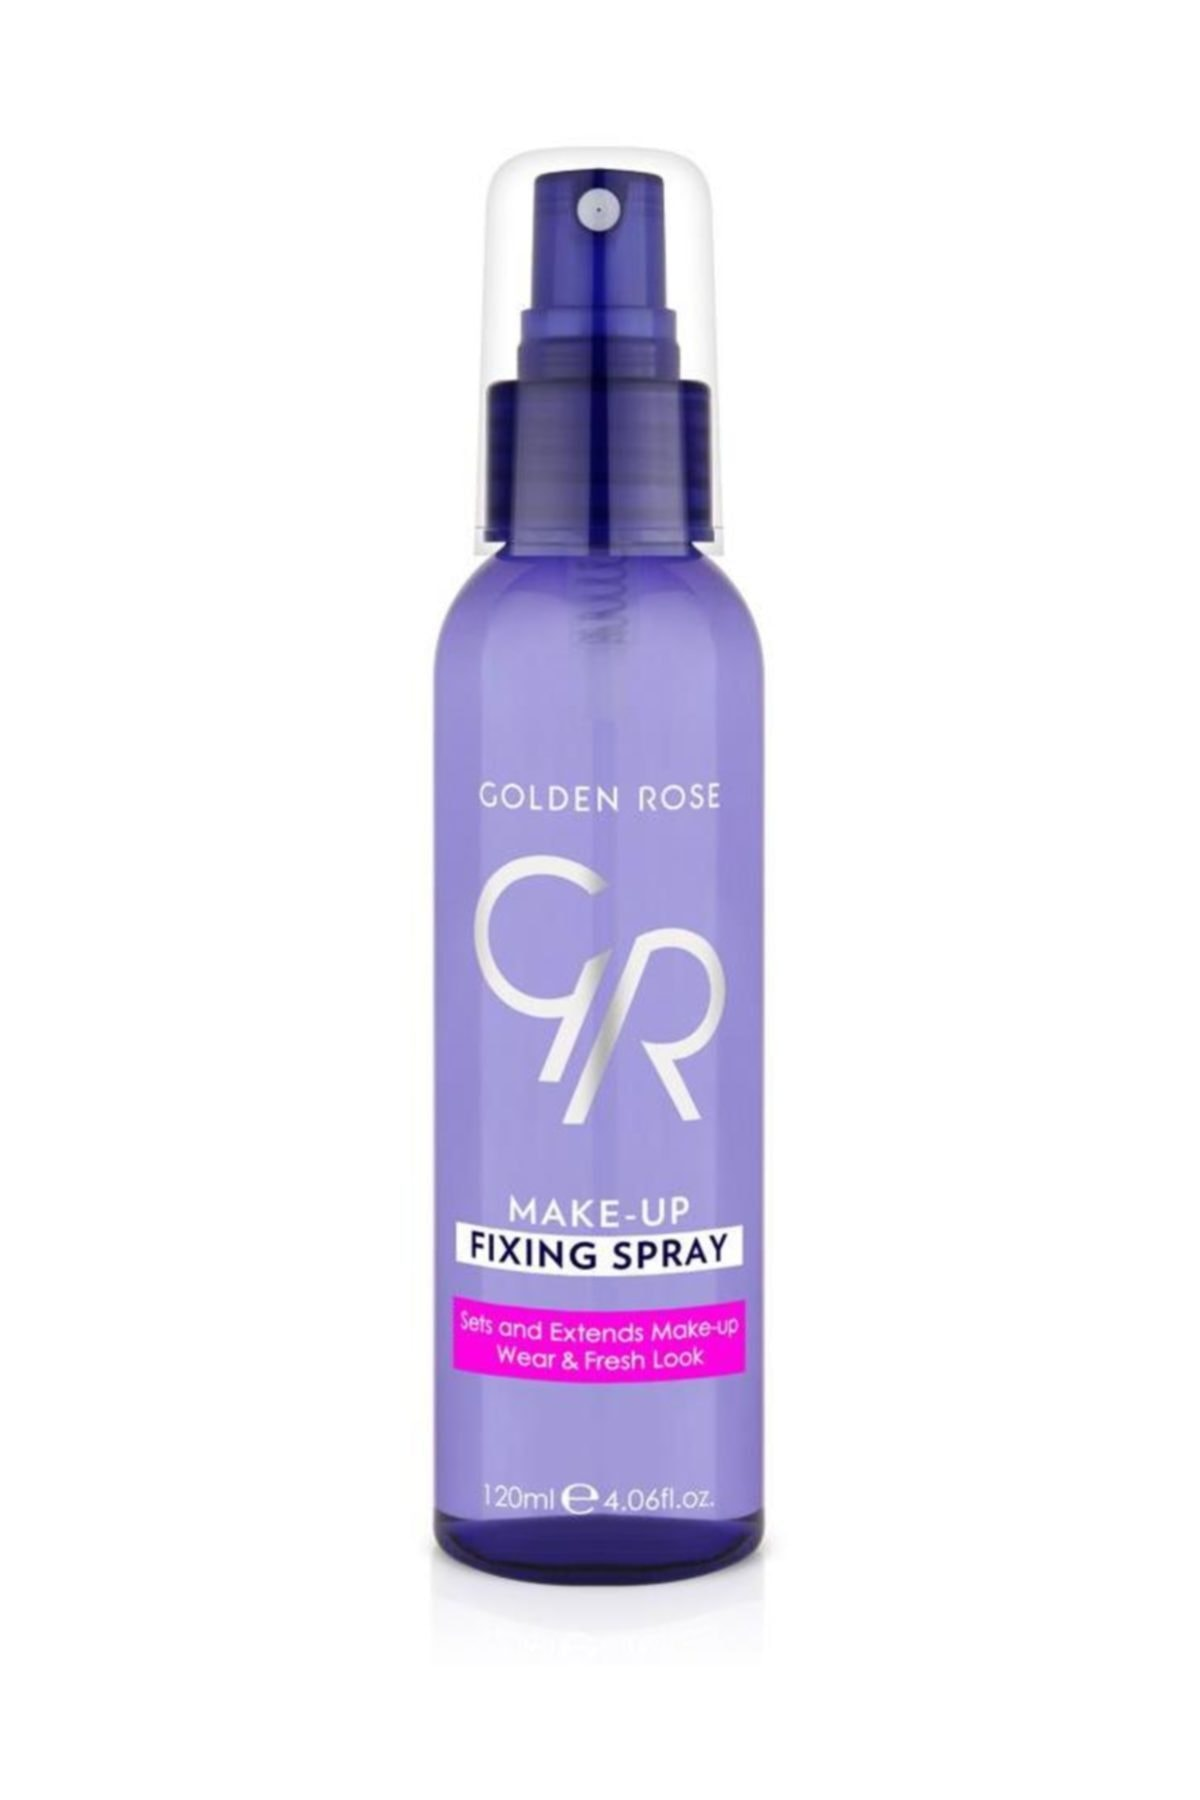 Golden Rose Makyaj Sabitleyici Sprey - Makeup Fixing Spray 1